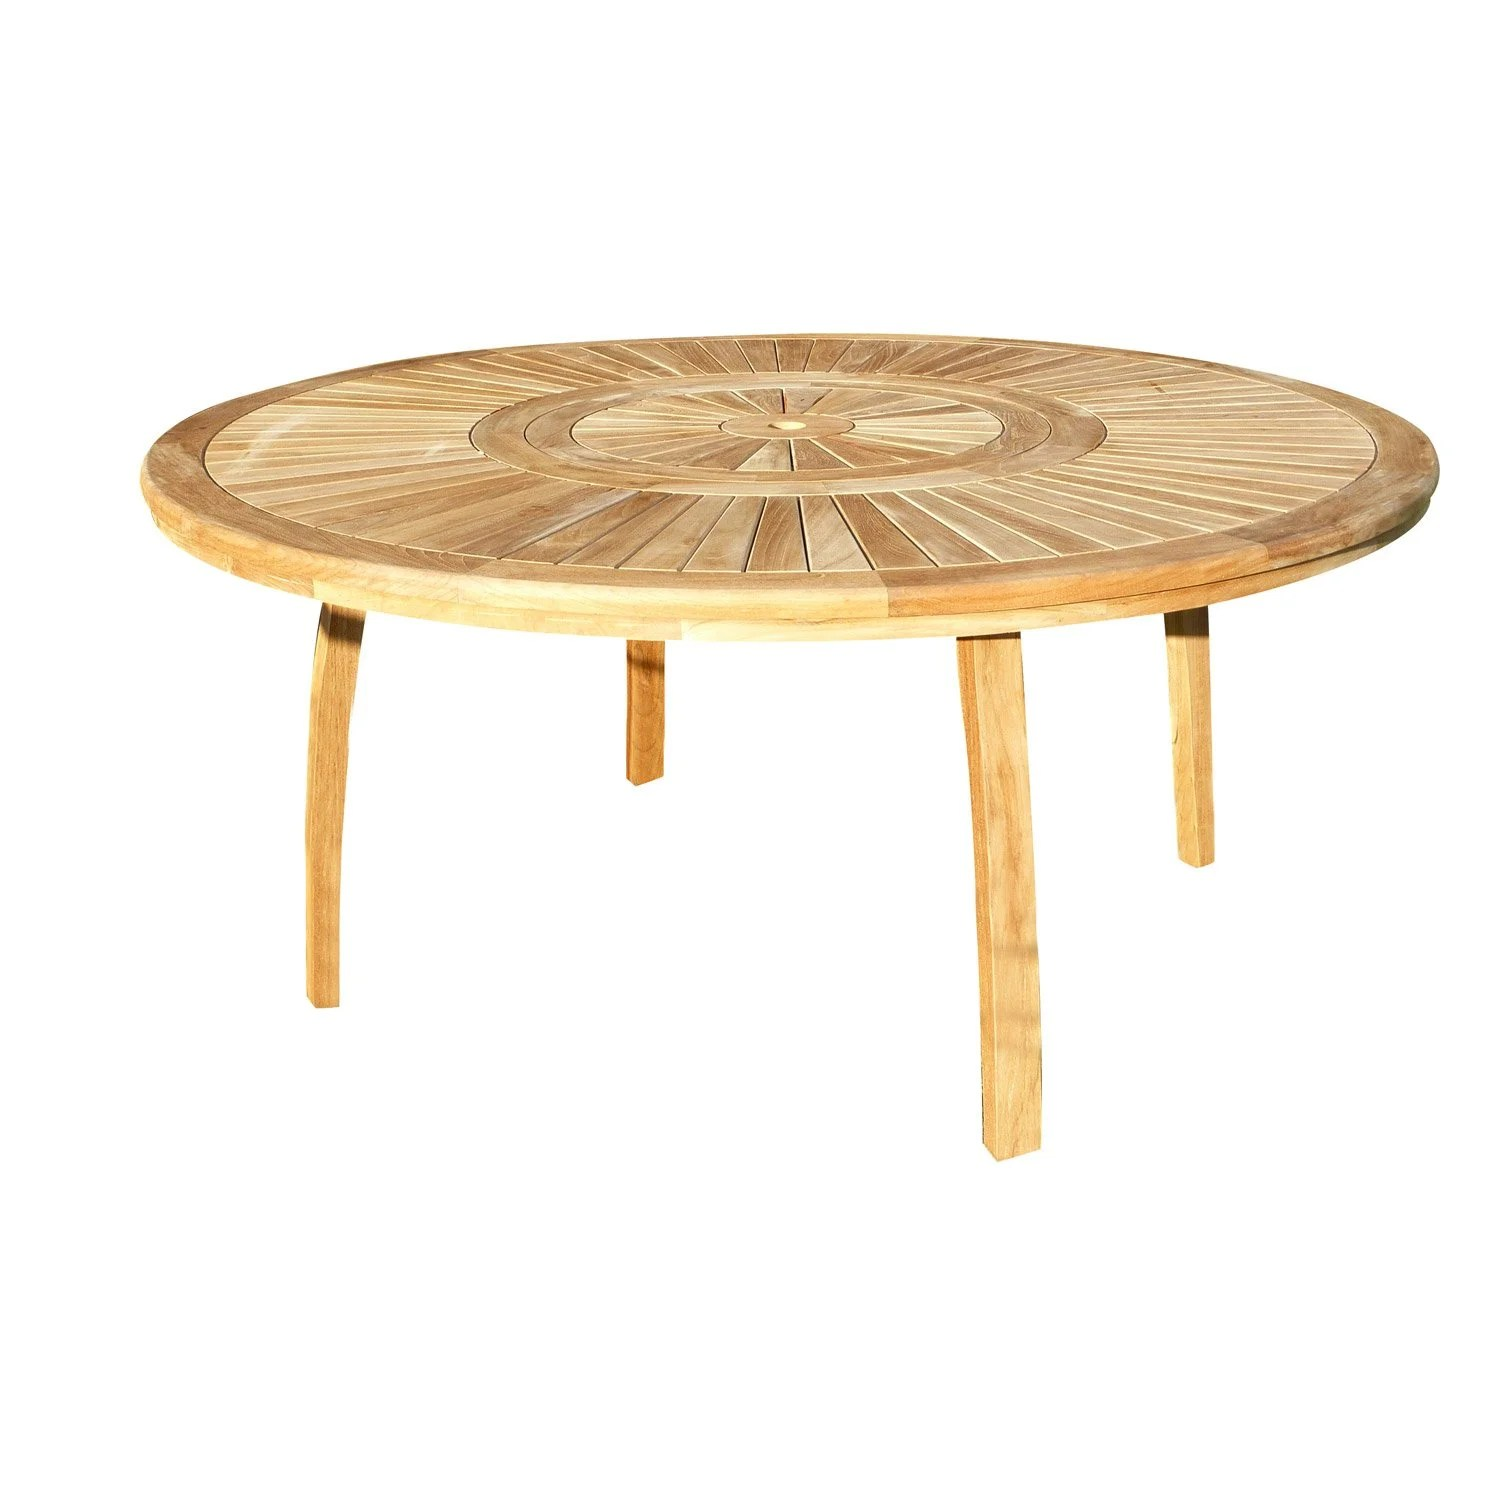 Table de jardin Orion ronde naturel 8 personnes  Leroy Merlin